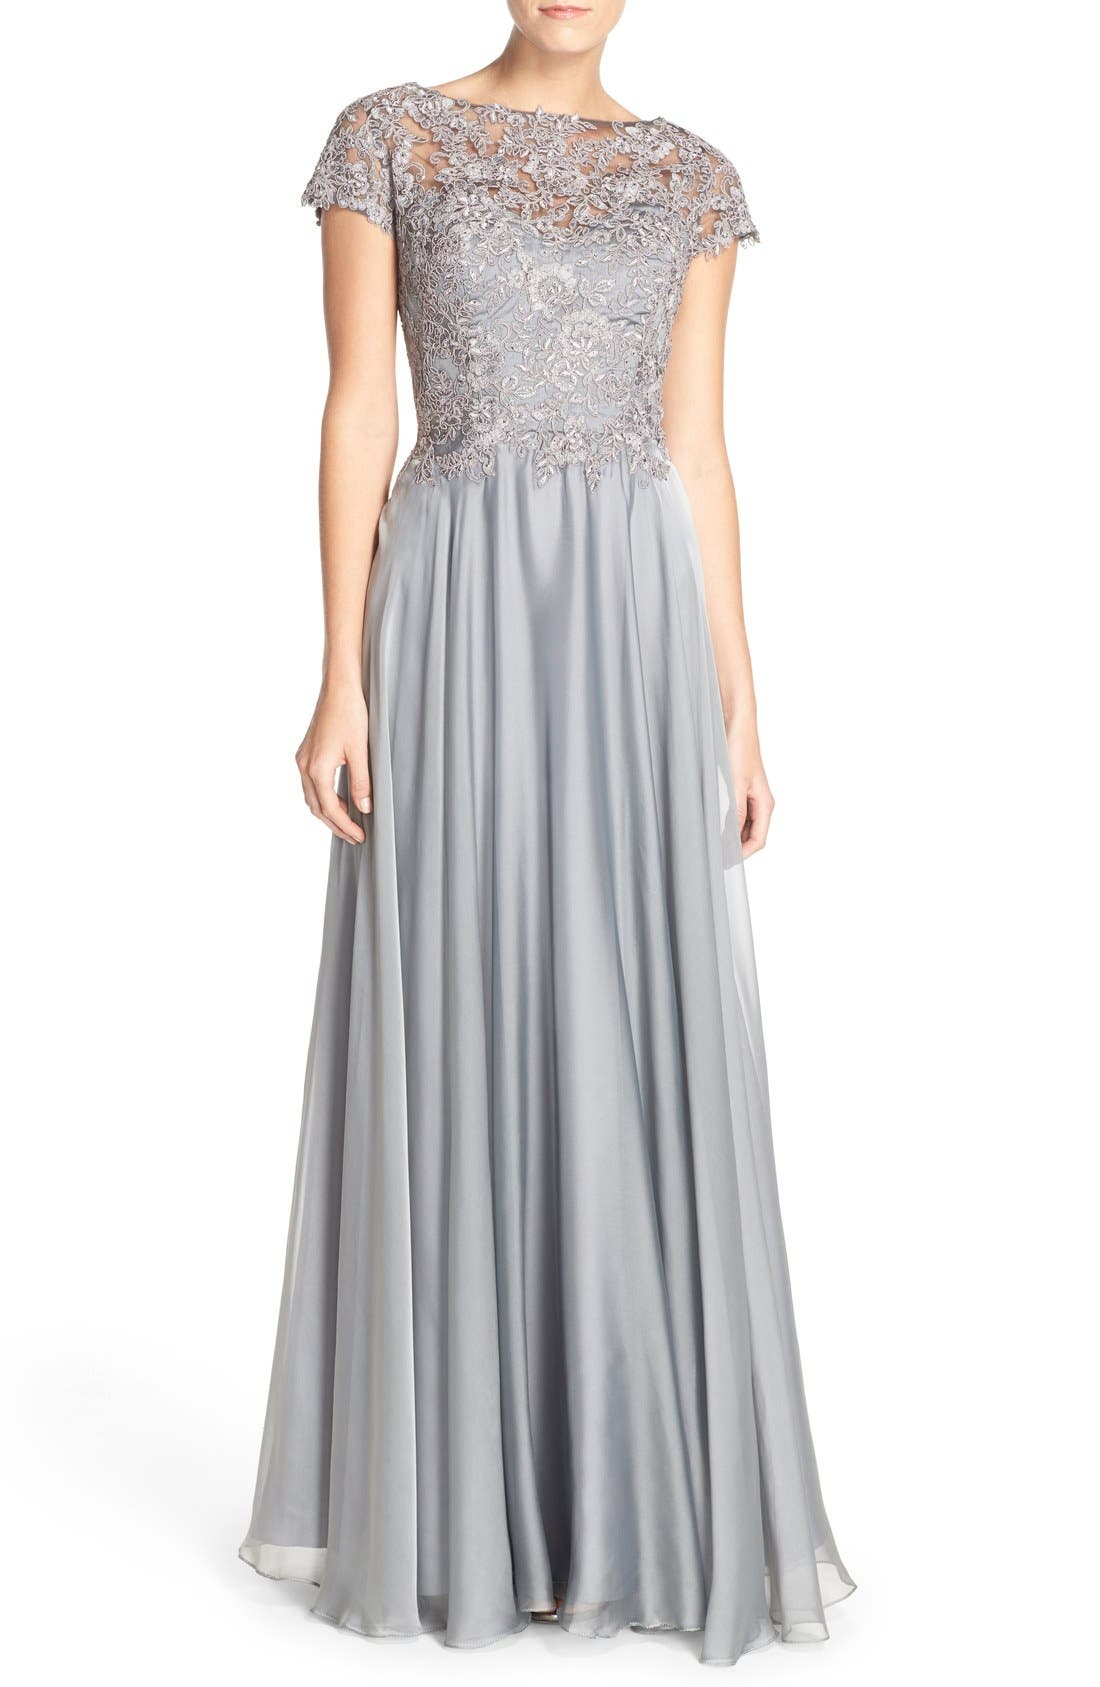 Vintage Evening Dresses and Formal Evening Gowns Womens La Femme Embellished Lace  Satin Ballgown Size 20 similar to 20W-22W - Grey $450.00 AT vintagedancer.com